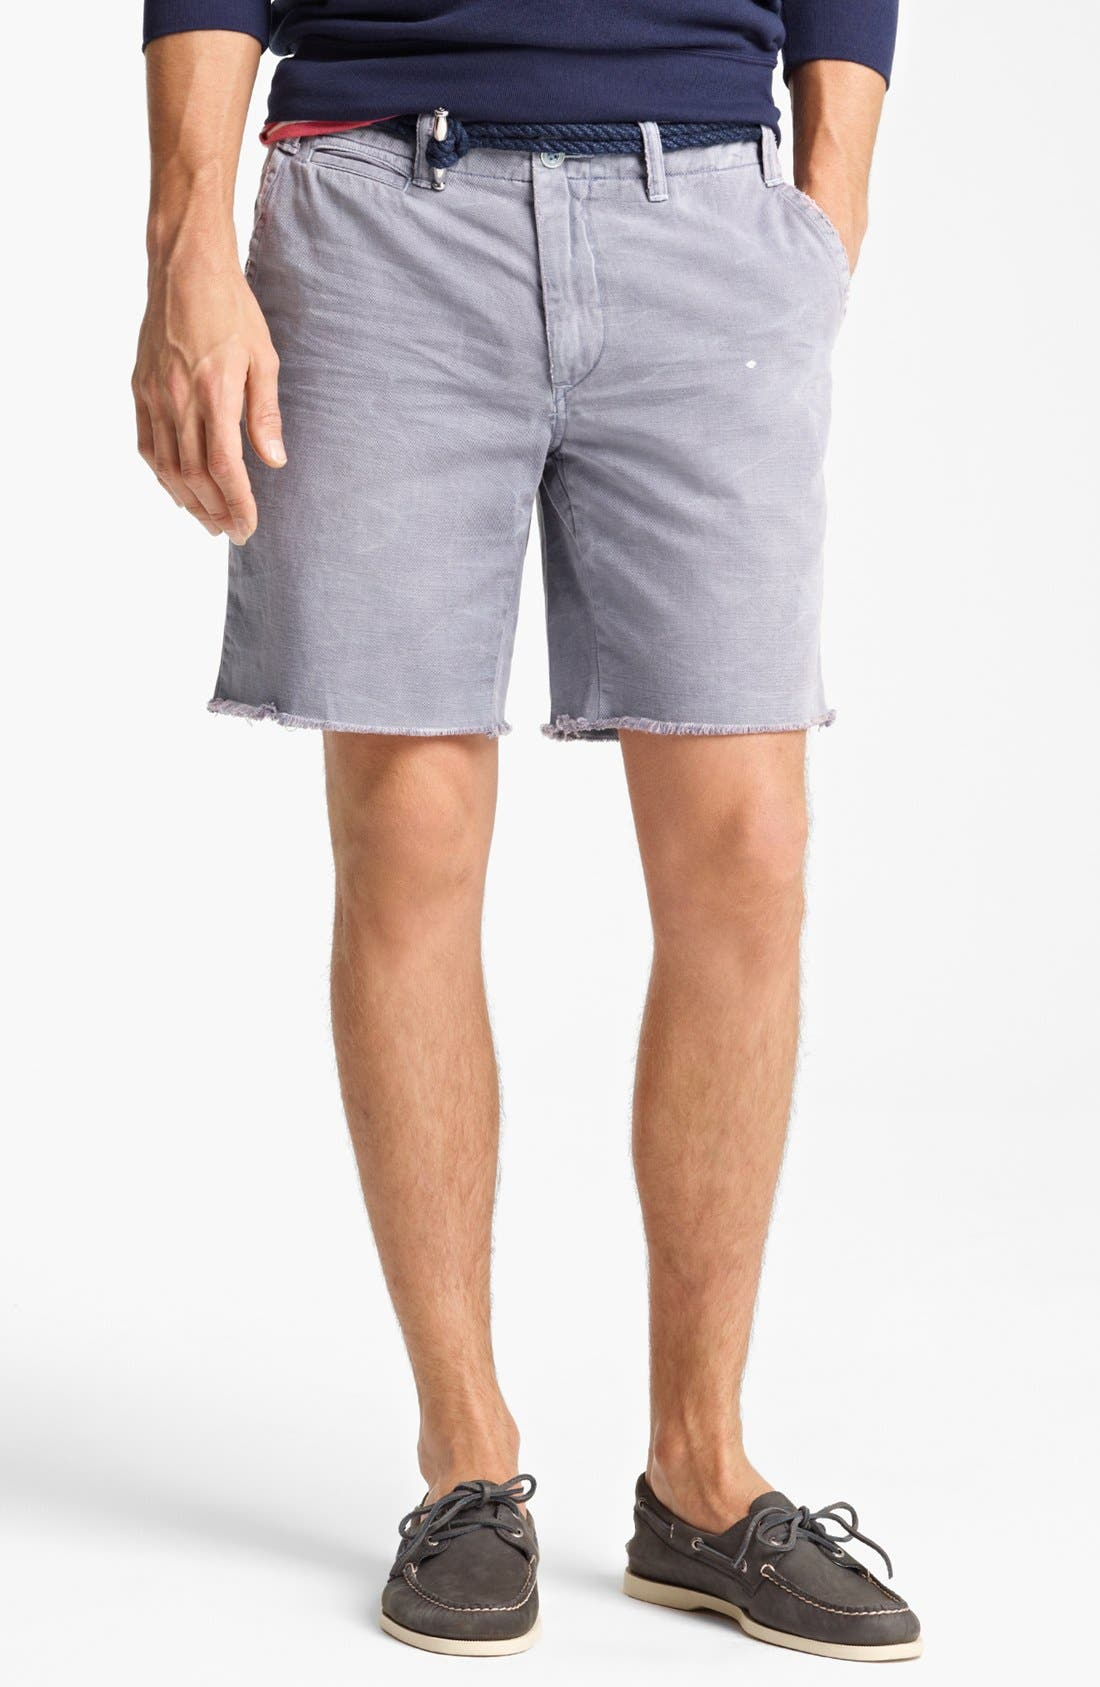 Alternate Image 1 Selected - Polo Ralph Lauren Cut Off Chino Shorts